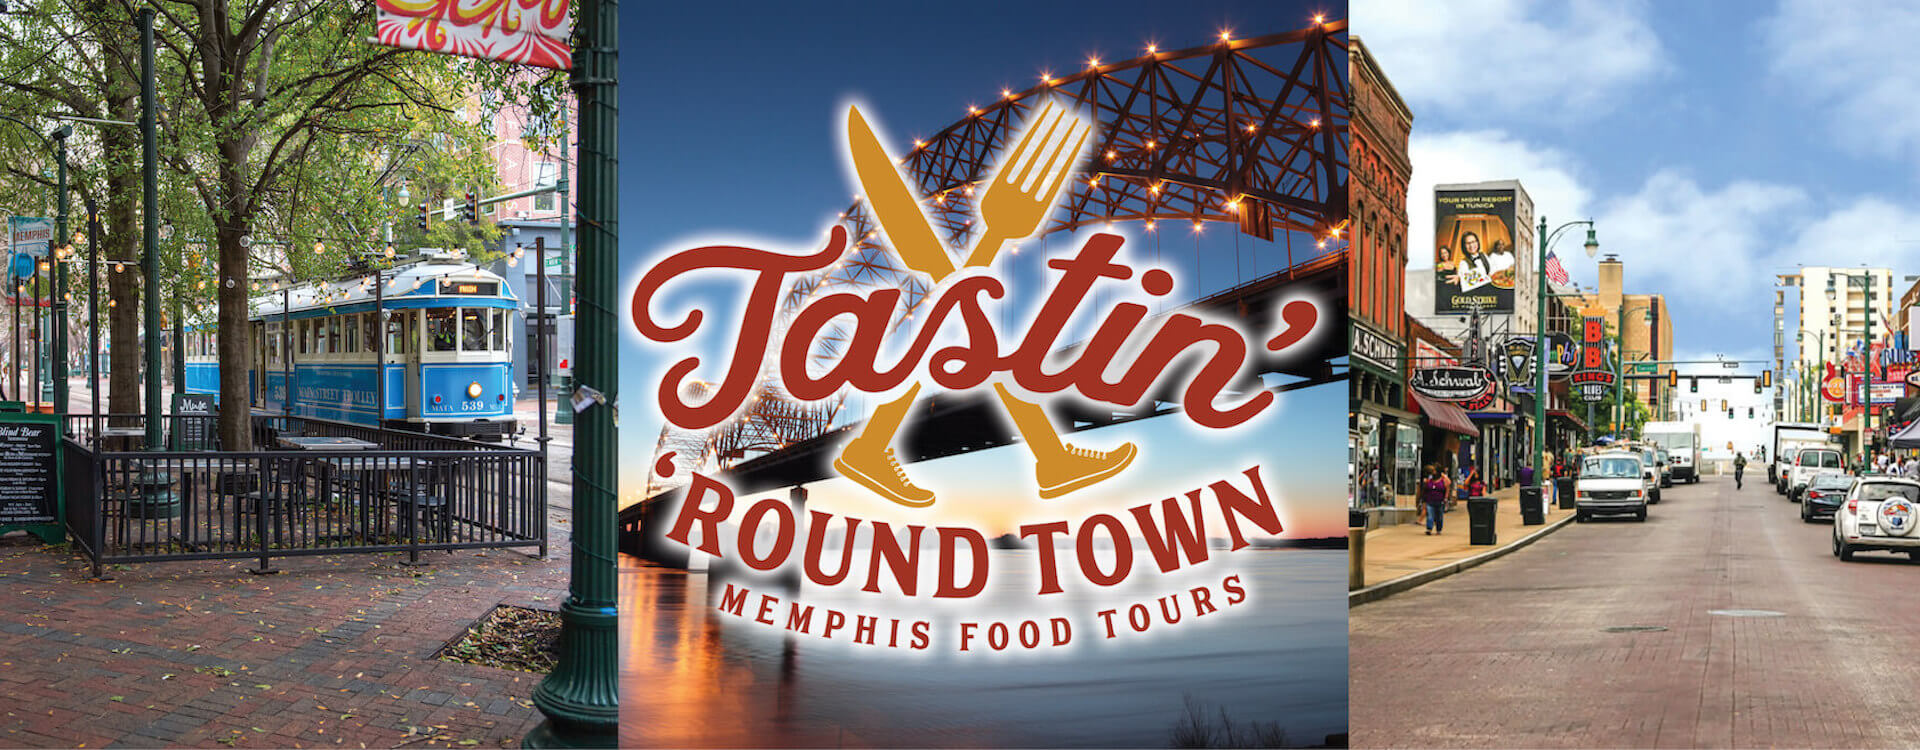 Memphis Food Tours